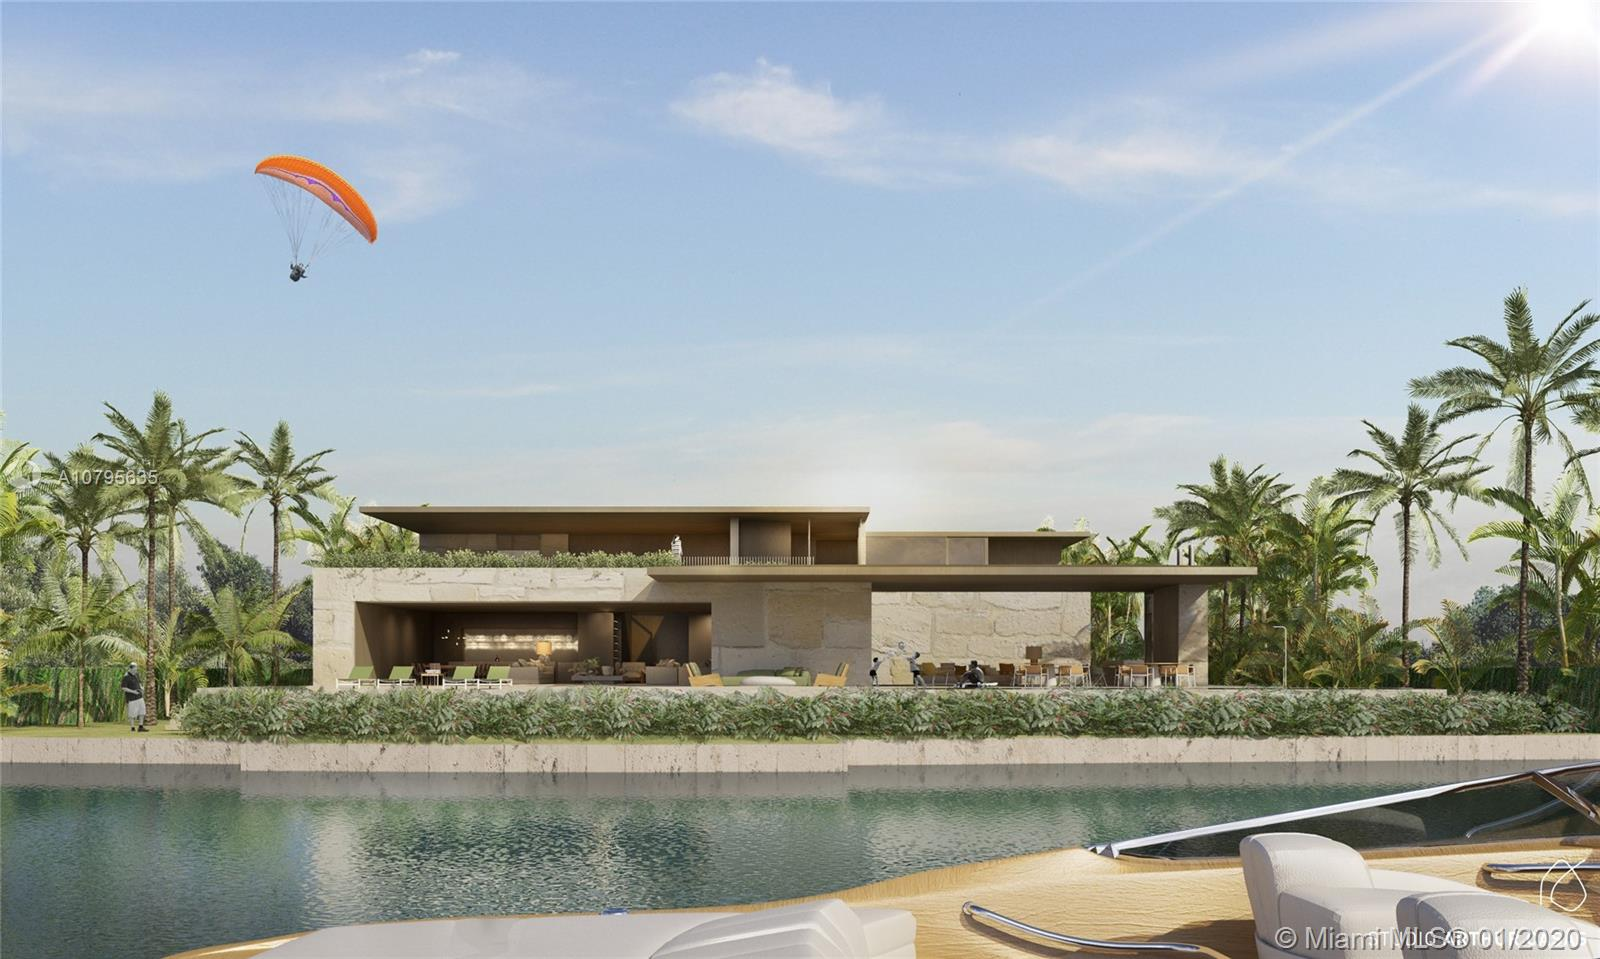 Once in a lifetime opportunity in the Venetian Islands! Two lots combined on the south east tip of East San Marino Island to form a total of 22,682 sq. ft. of land and 160 ft of water frontage. Brand new construction plans approved by the City of Miami Beach. Plans include a 10,684 sq. ft home with 5 bedrooms, 5 baths, and 1 half baths, staff quarters, and gym. Unique opportunity to build your own custom interiors and make this gem your own. Listing includes land, foundation, and exterior shell.